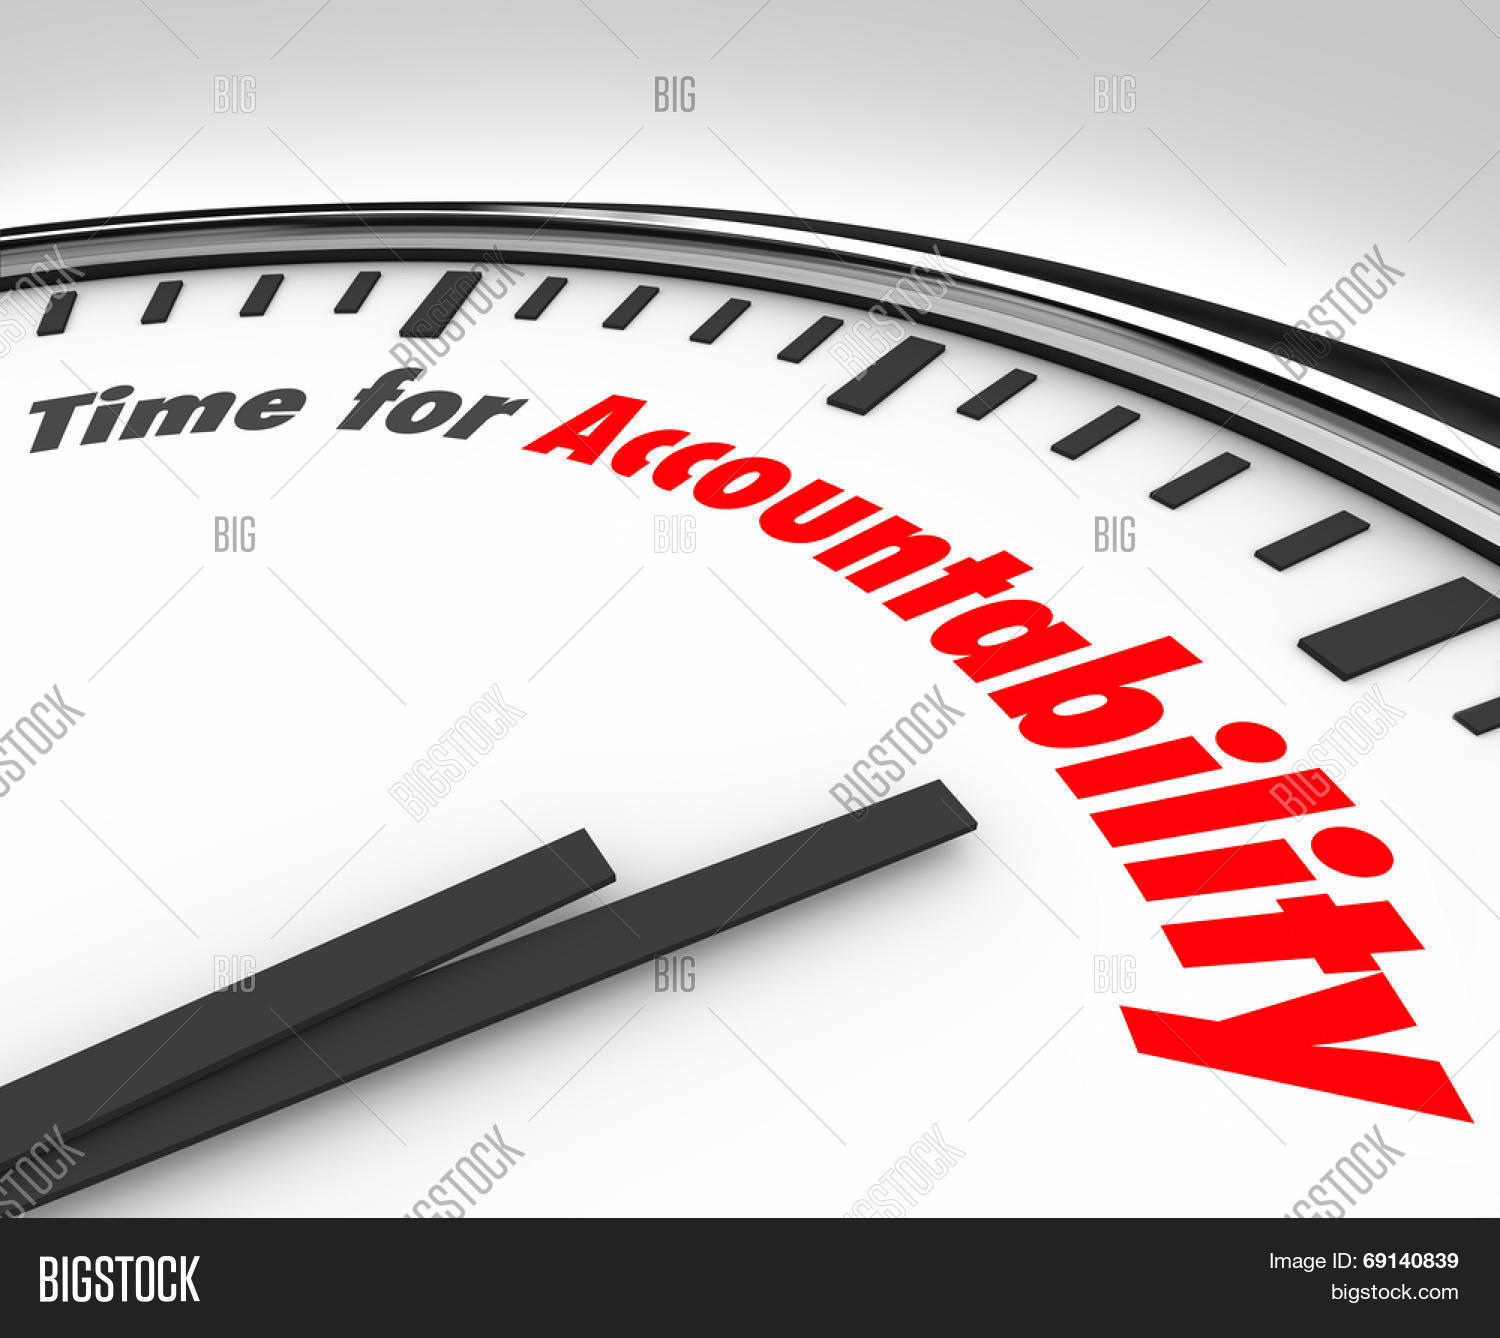 time for accountability words on a clock face showing importance time for accountability words on a clock face showing importance of taking responsibility for your actions